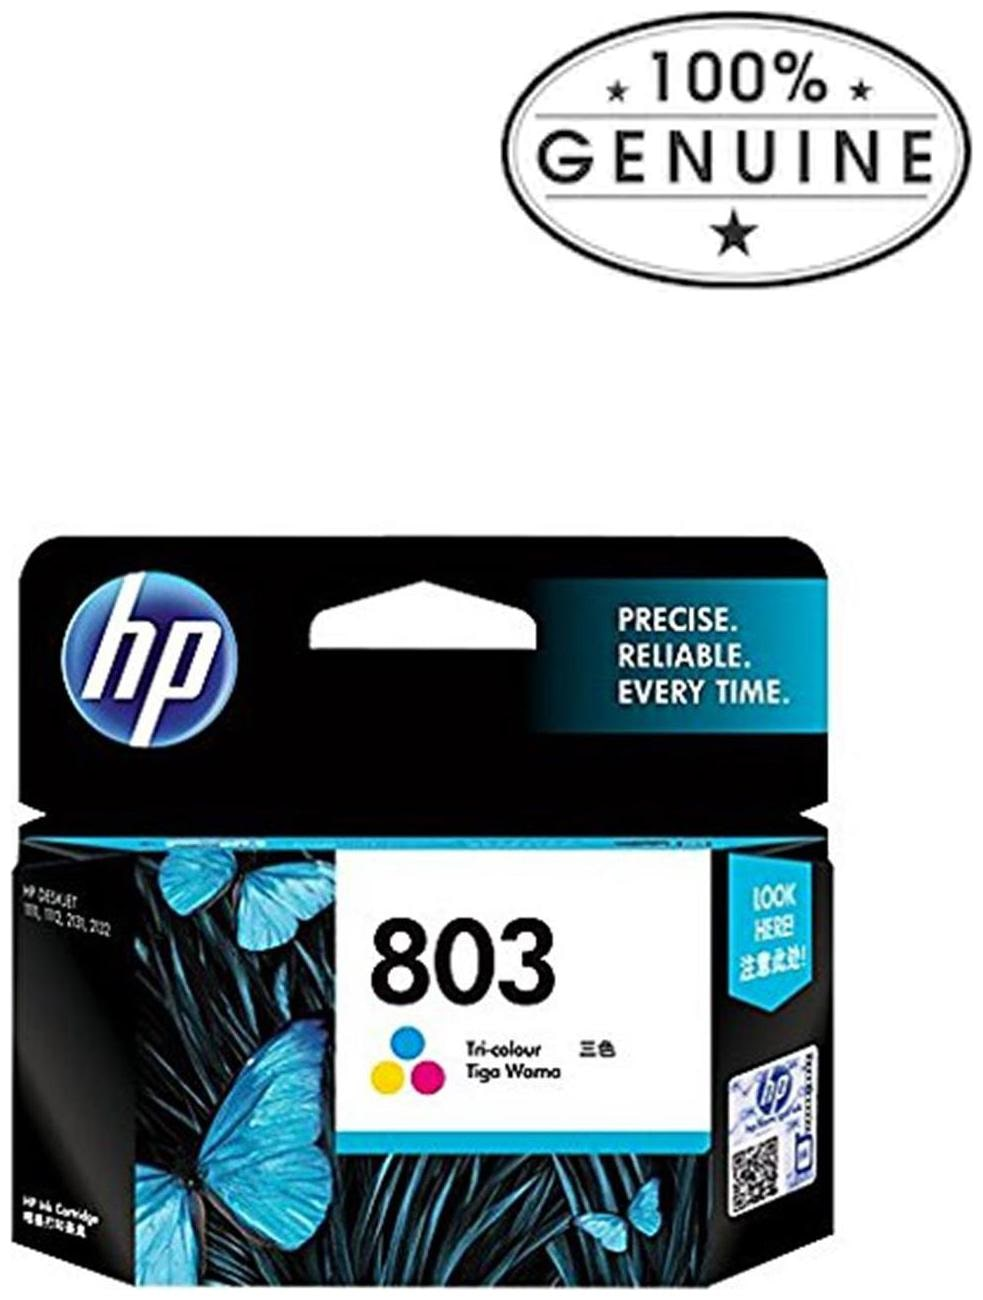 HP 803 Tri color Ink Cartridge by Pine Digital